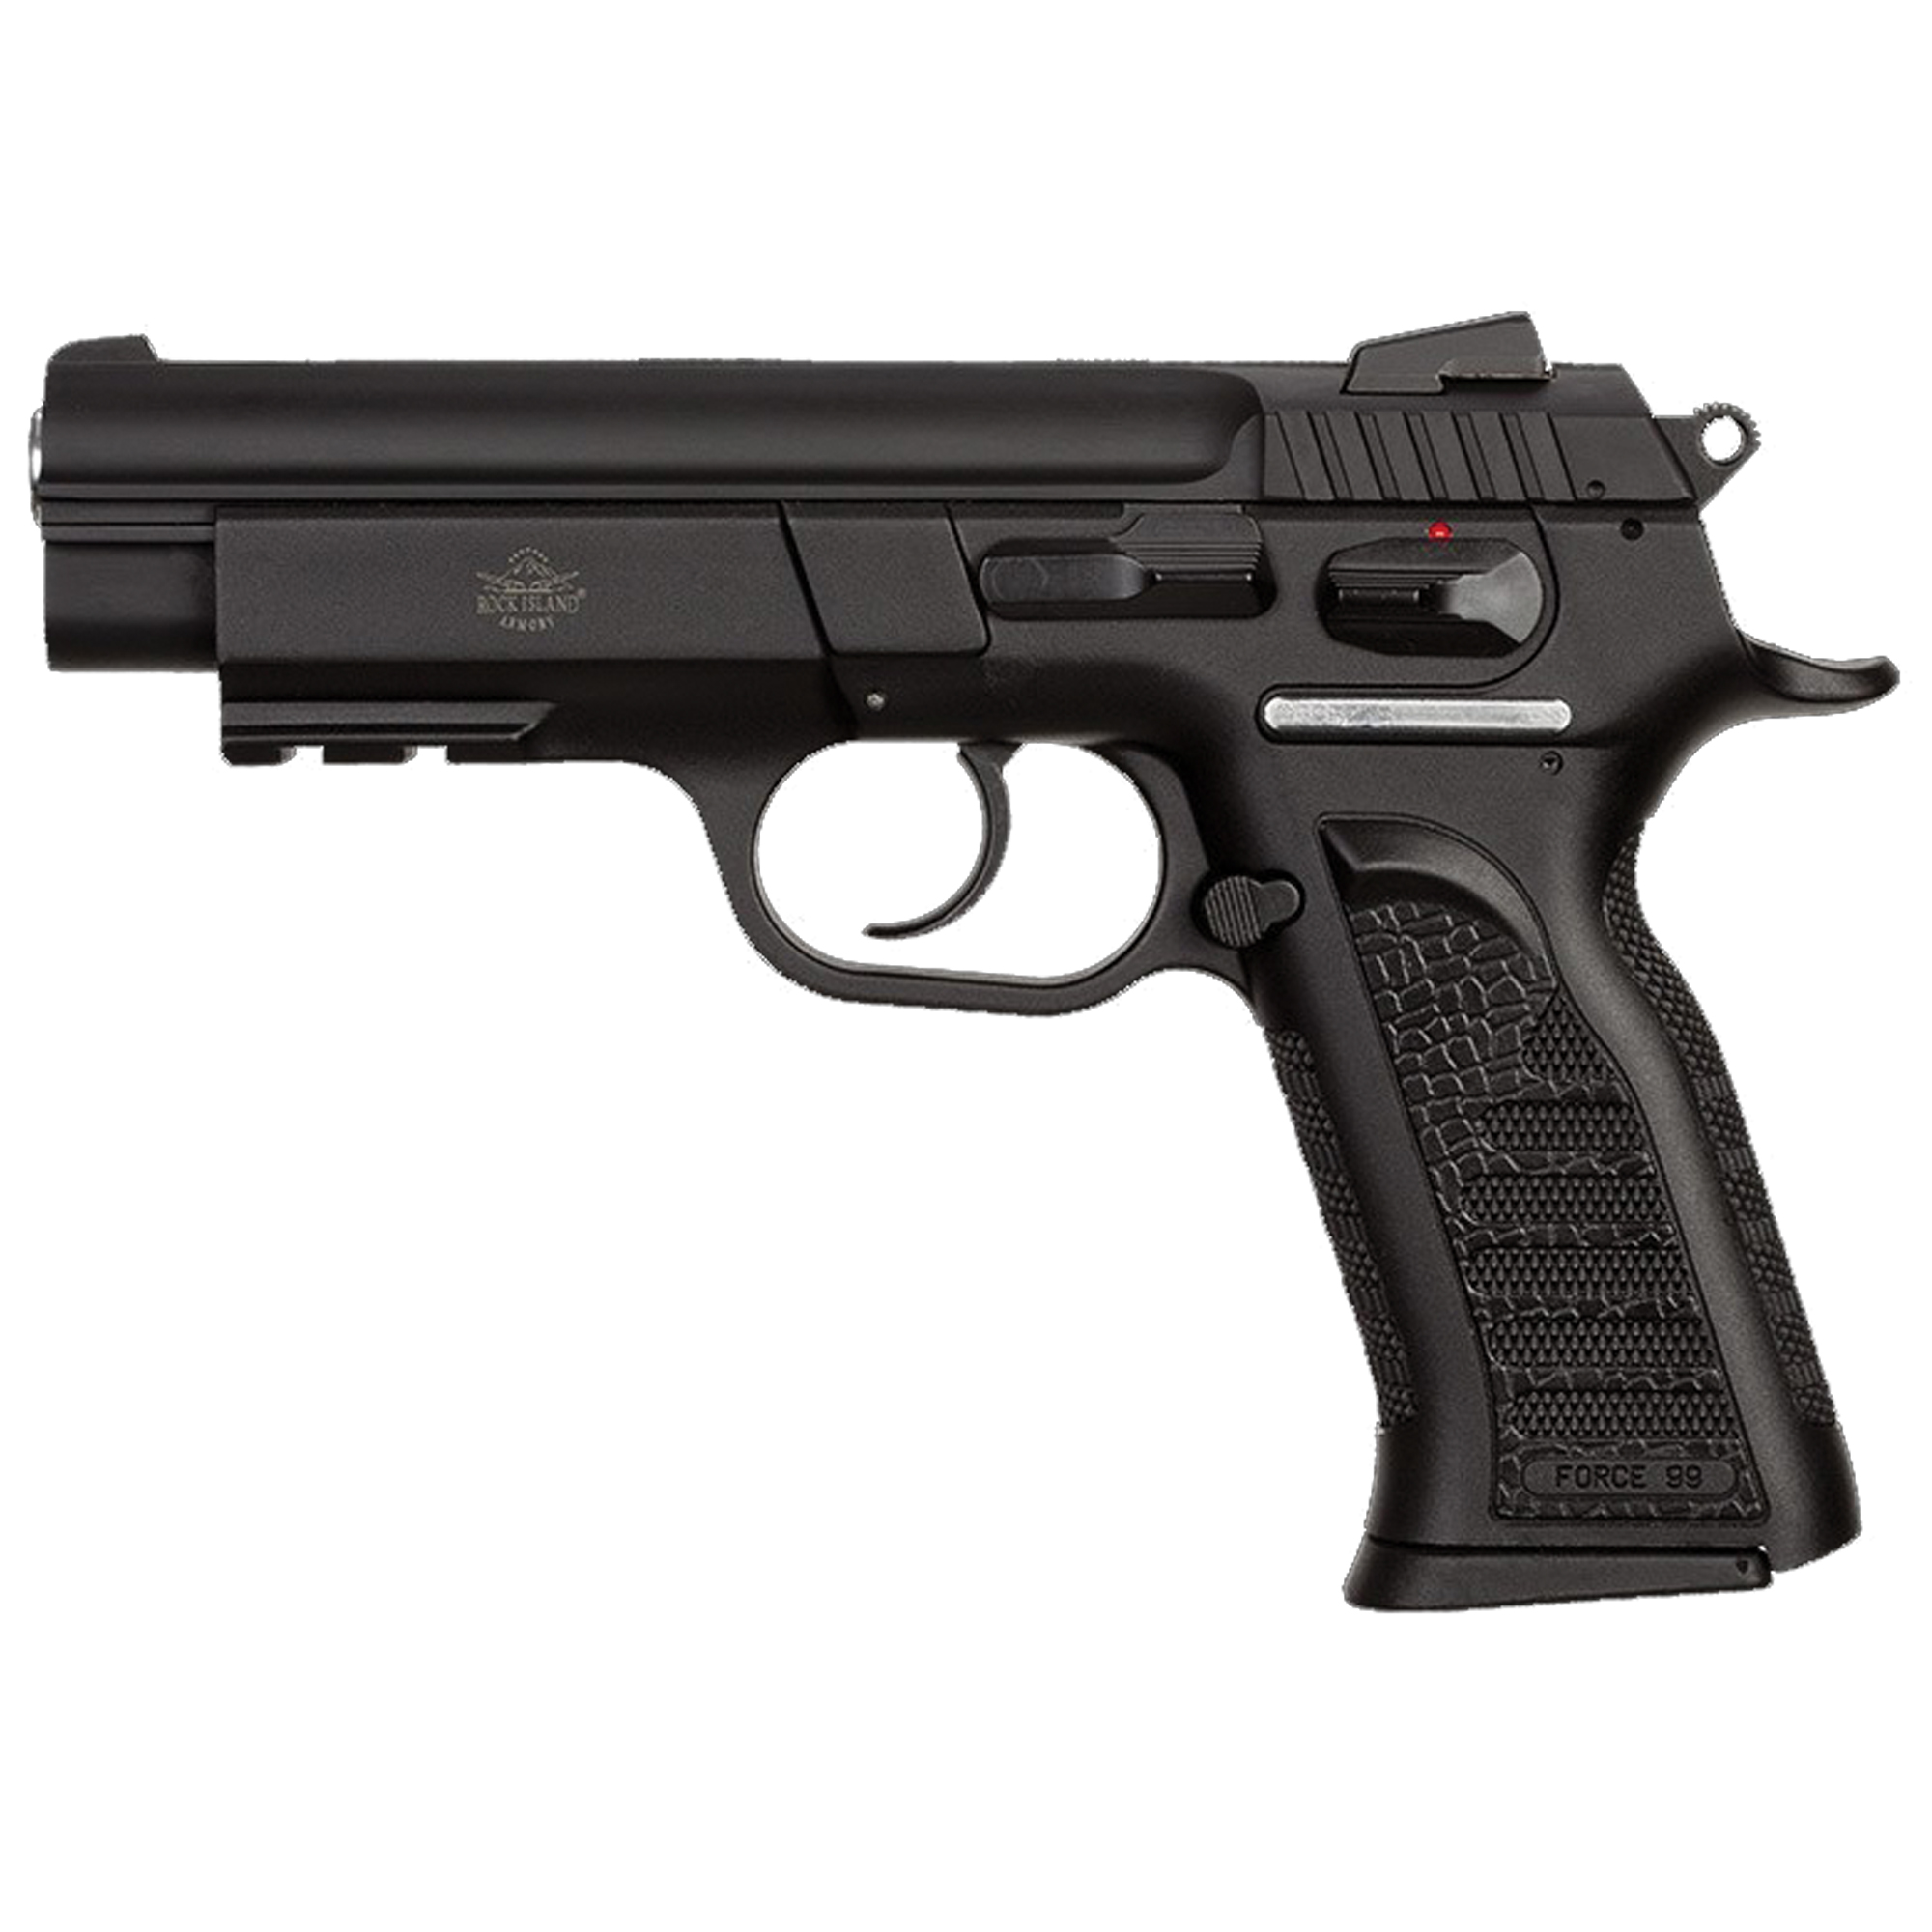 """The MAP/MAPP series provides a light and capable double action service grade pistol for concealed carry and self defense. Offered in both full- and mid-size options with either polymer or steel frames"""" each includes an accessory light rail to add to its usability."""